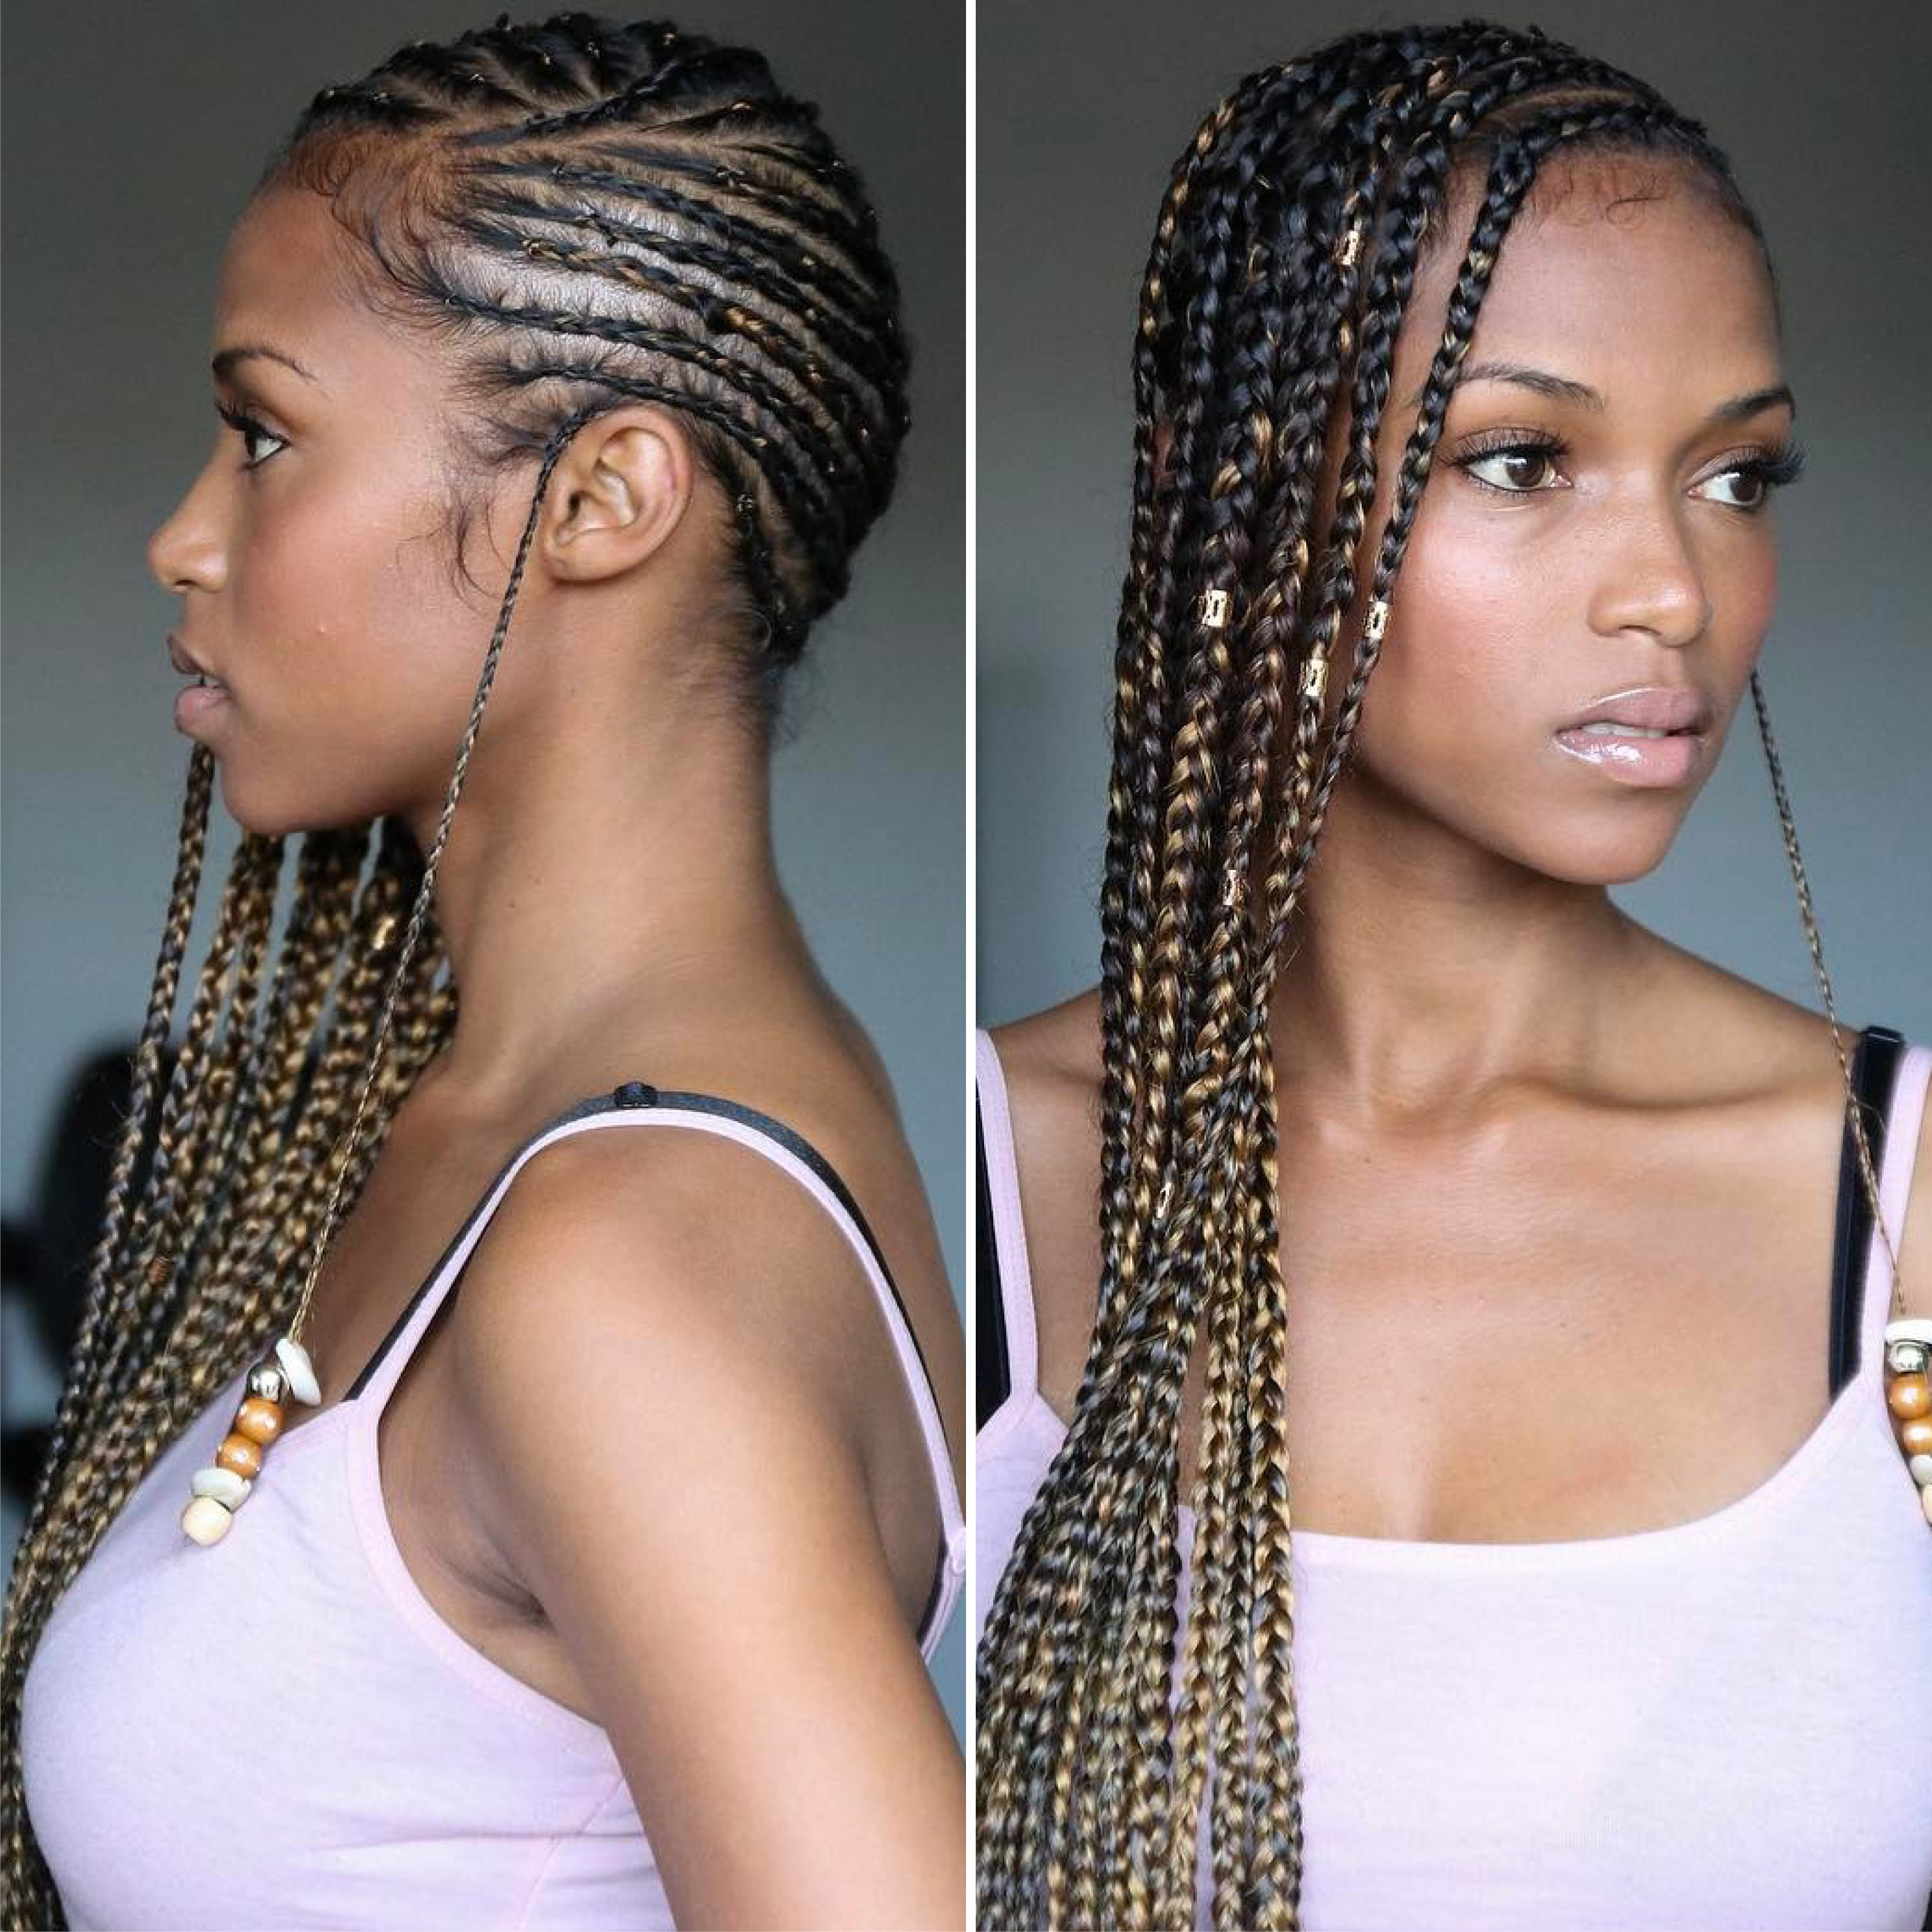 12 Gorgeous Braided Hairstyles With Beads From Instagram Inside Widely Used Metallic Side Cornrows Braided Hairstyles (View 14 of 20)